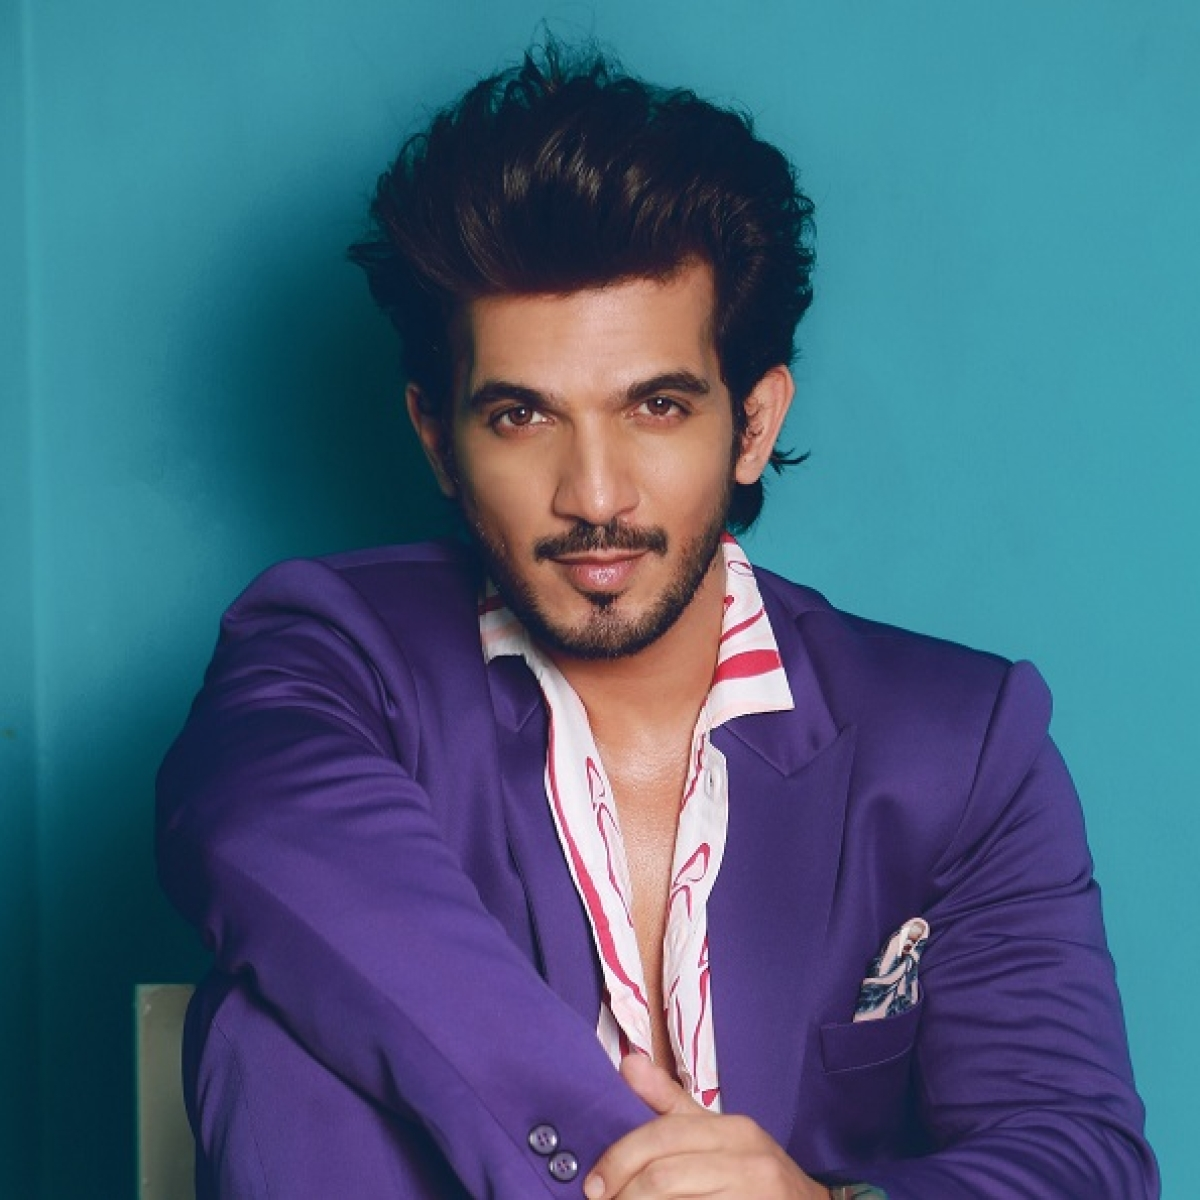 'Family keeps me sane,' says 'Naagin' actor Arjun Bijlani as he talks about striking work-life balance, and more